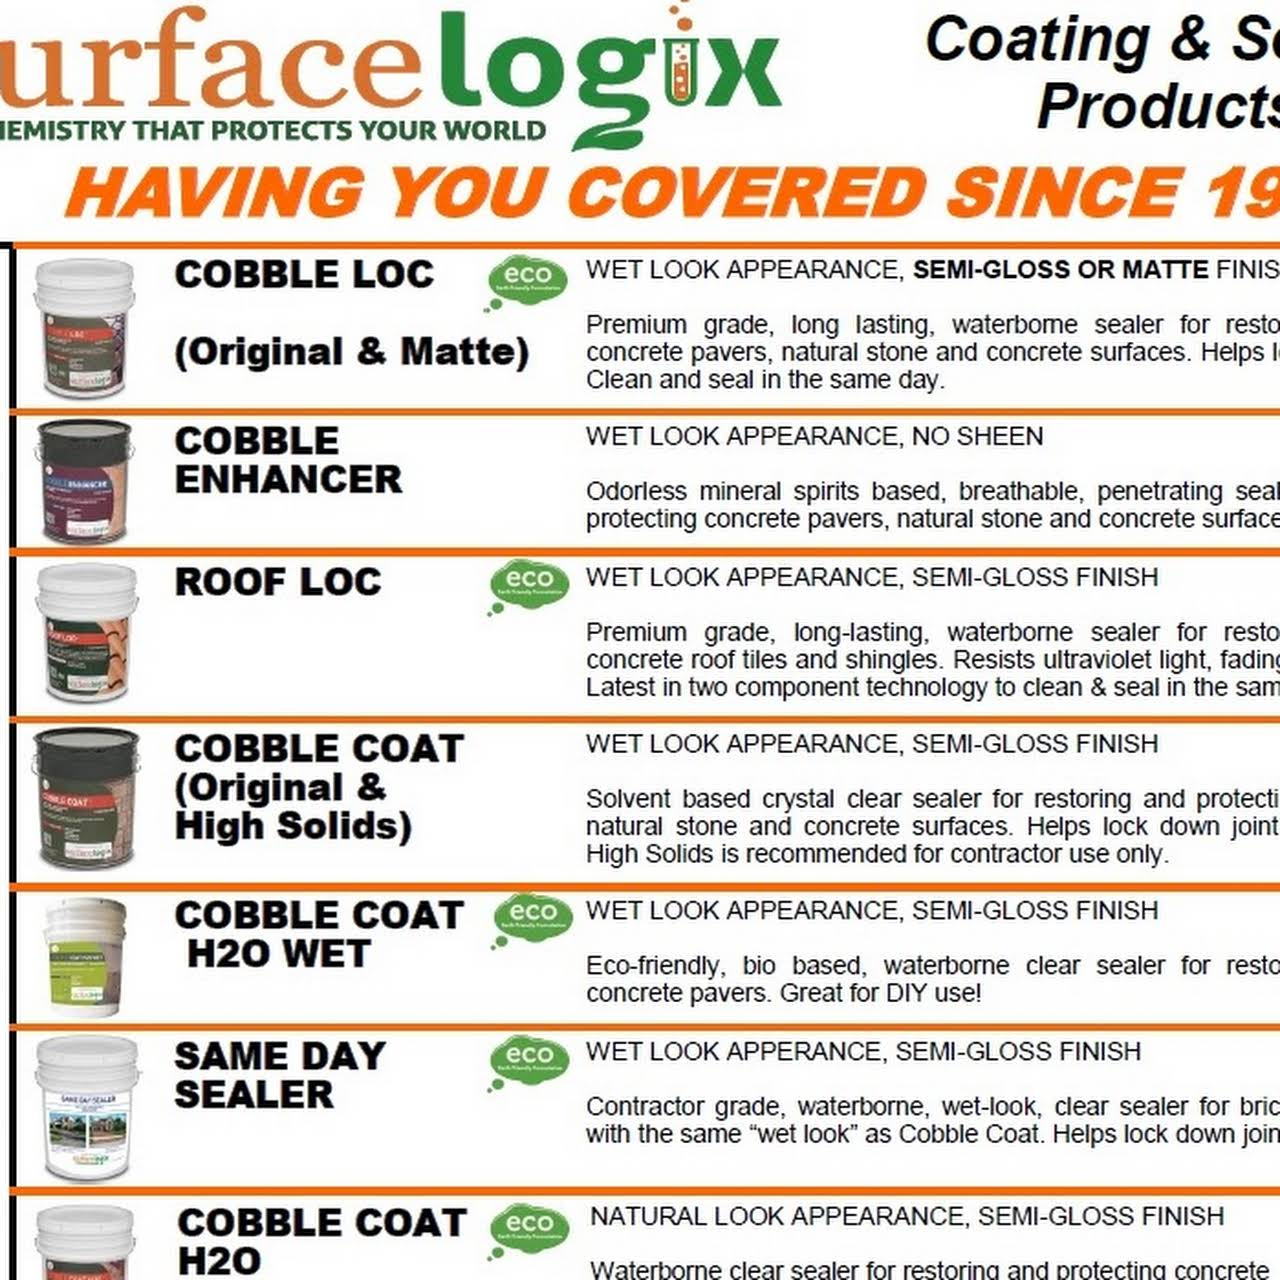 SurfaceLogix / Reliance Supply Company USA Inc - Manufacturer in